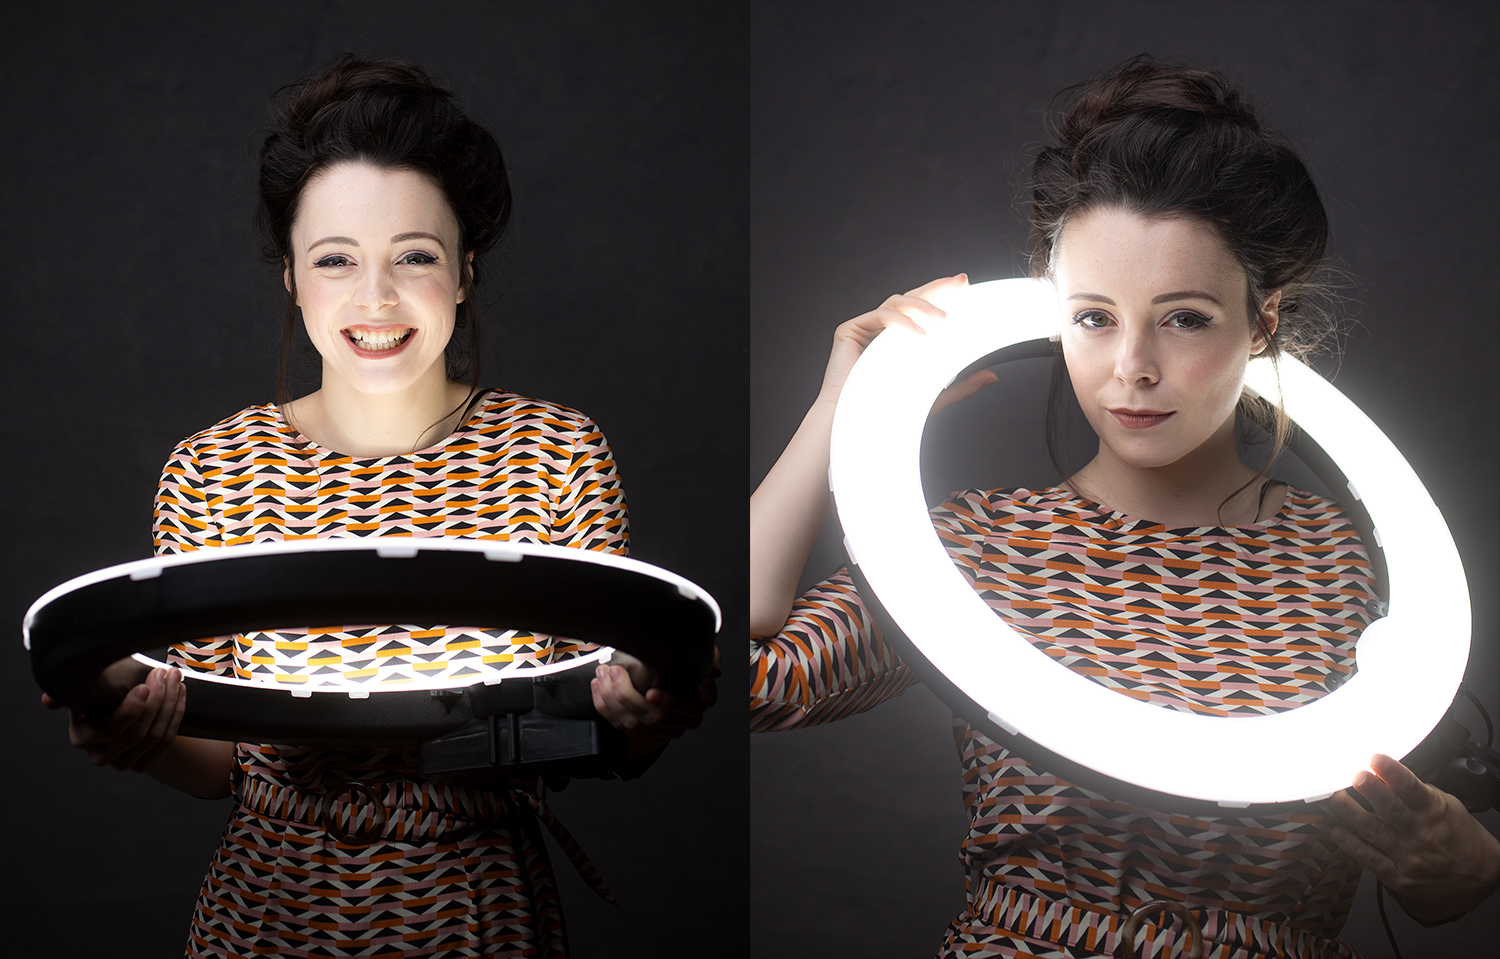 woman posing with ring lights as a prop